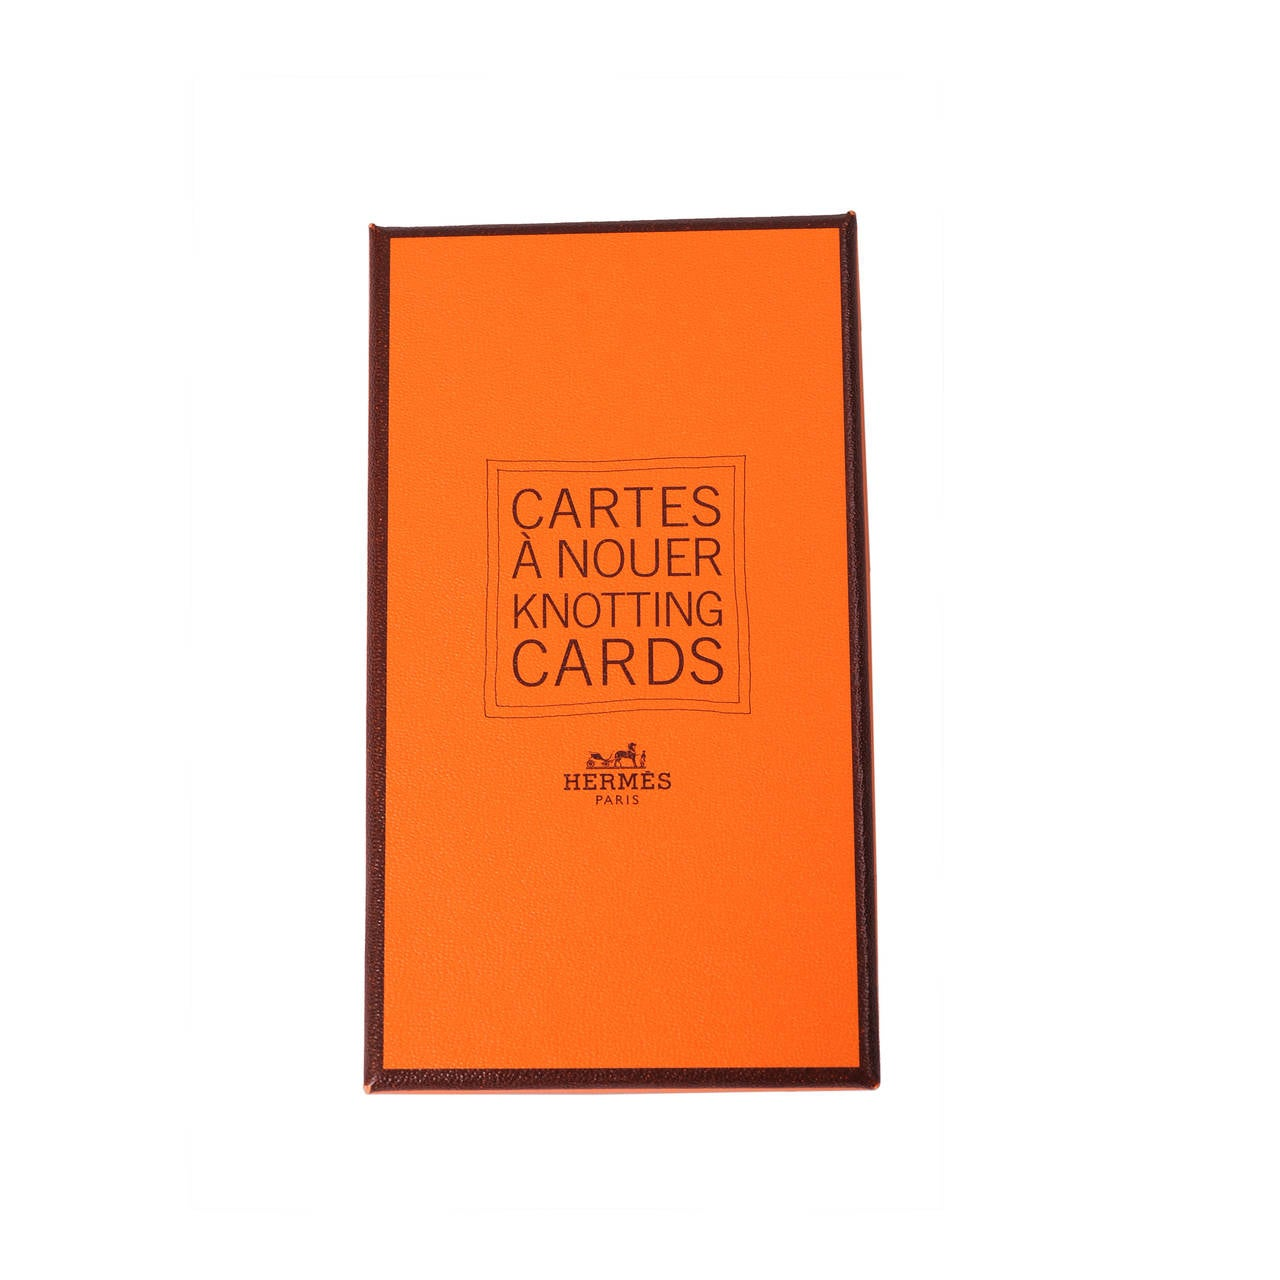 Hermes Cartes A Nouer, Knotting Cards